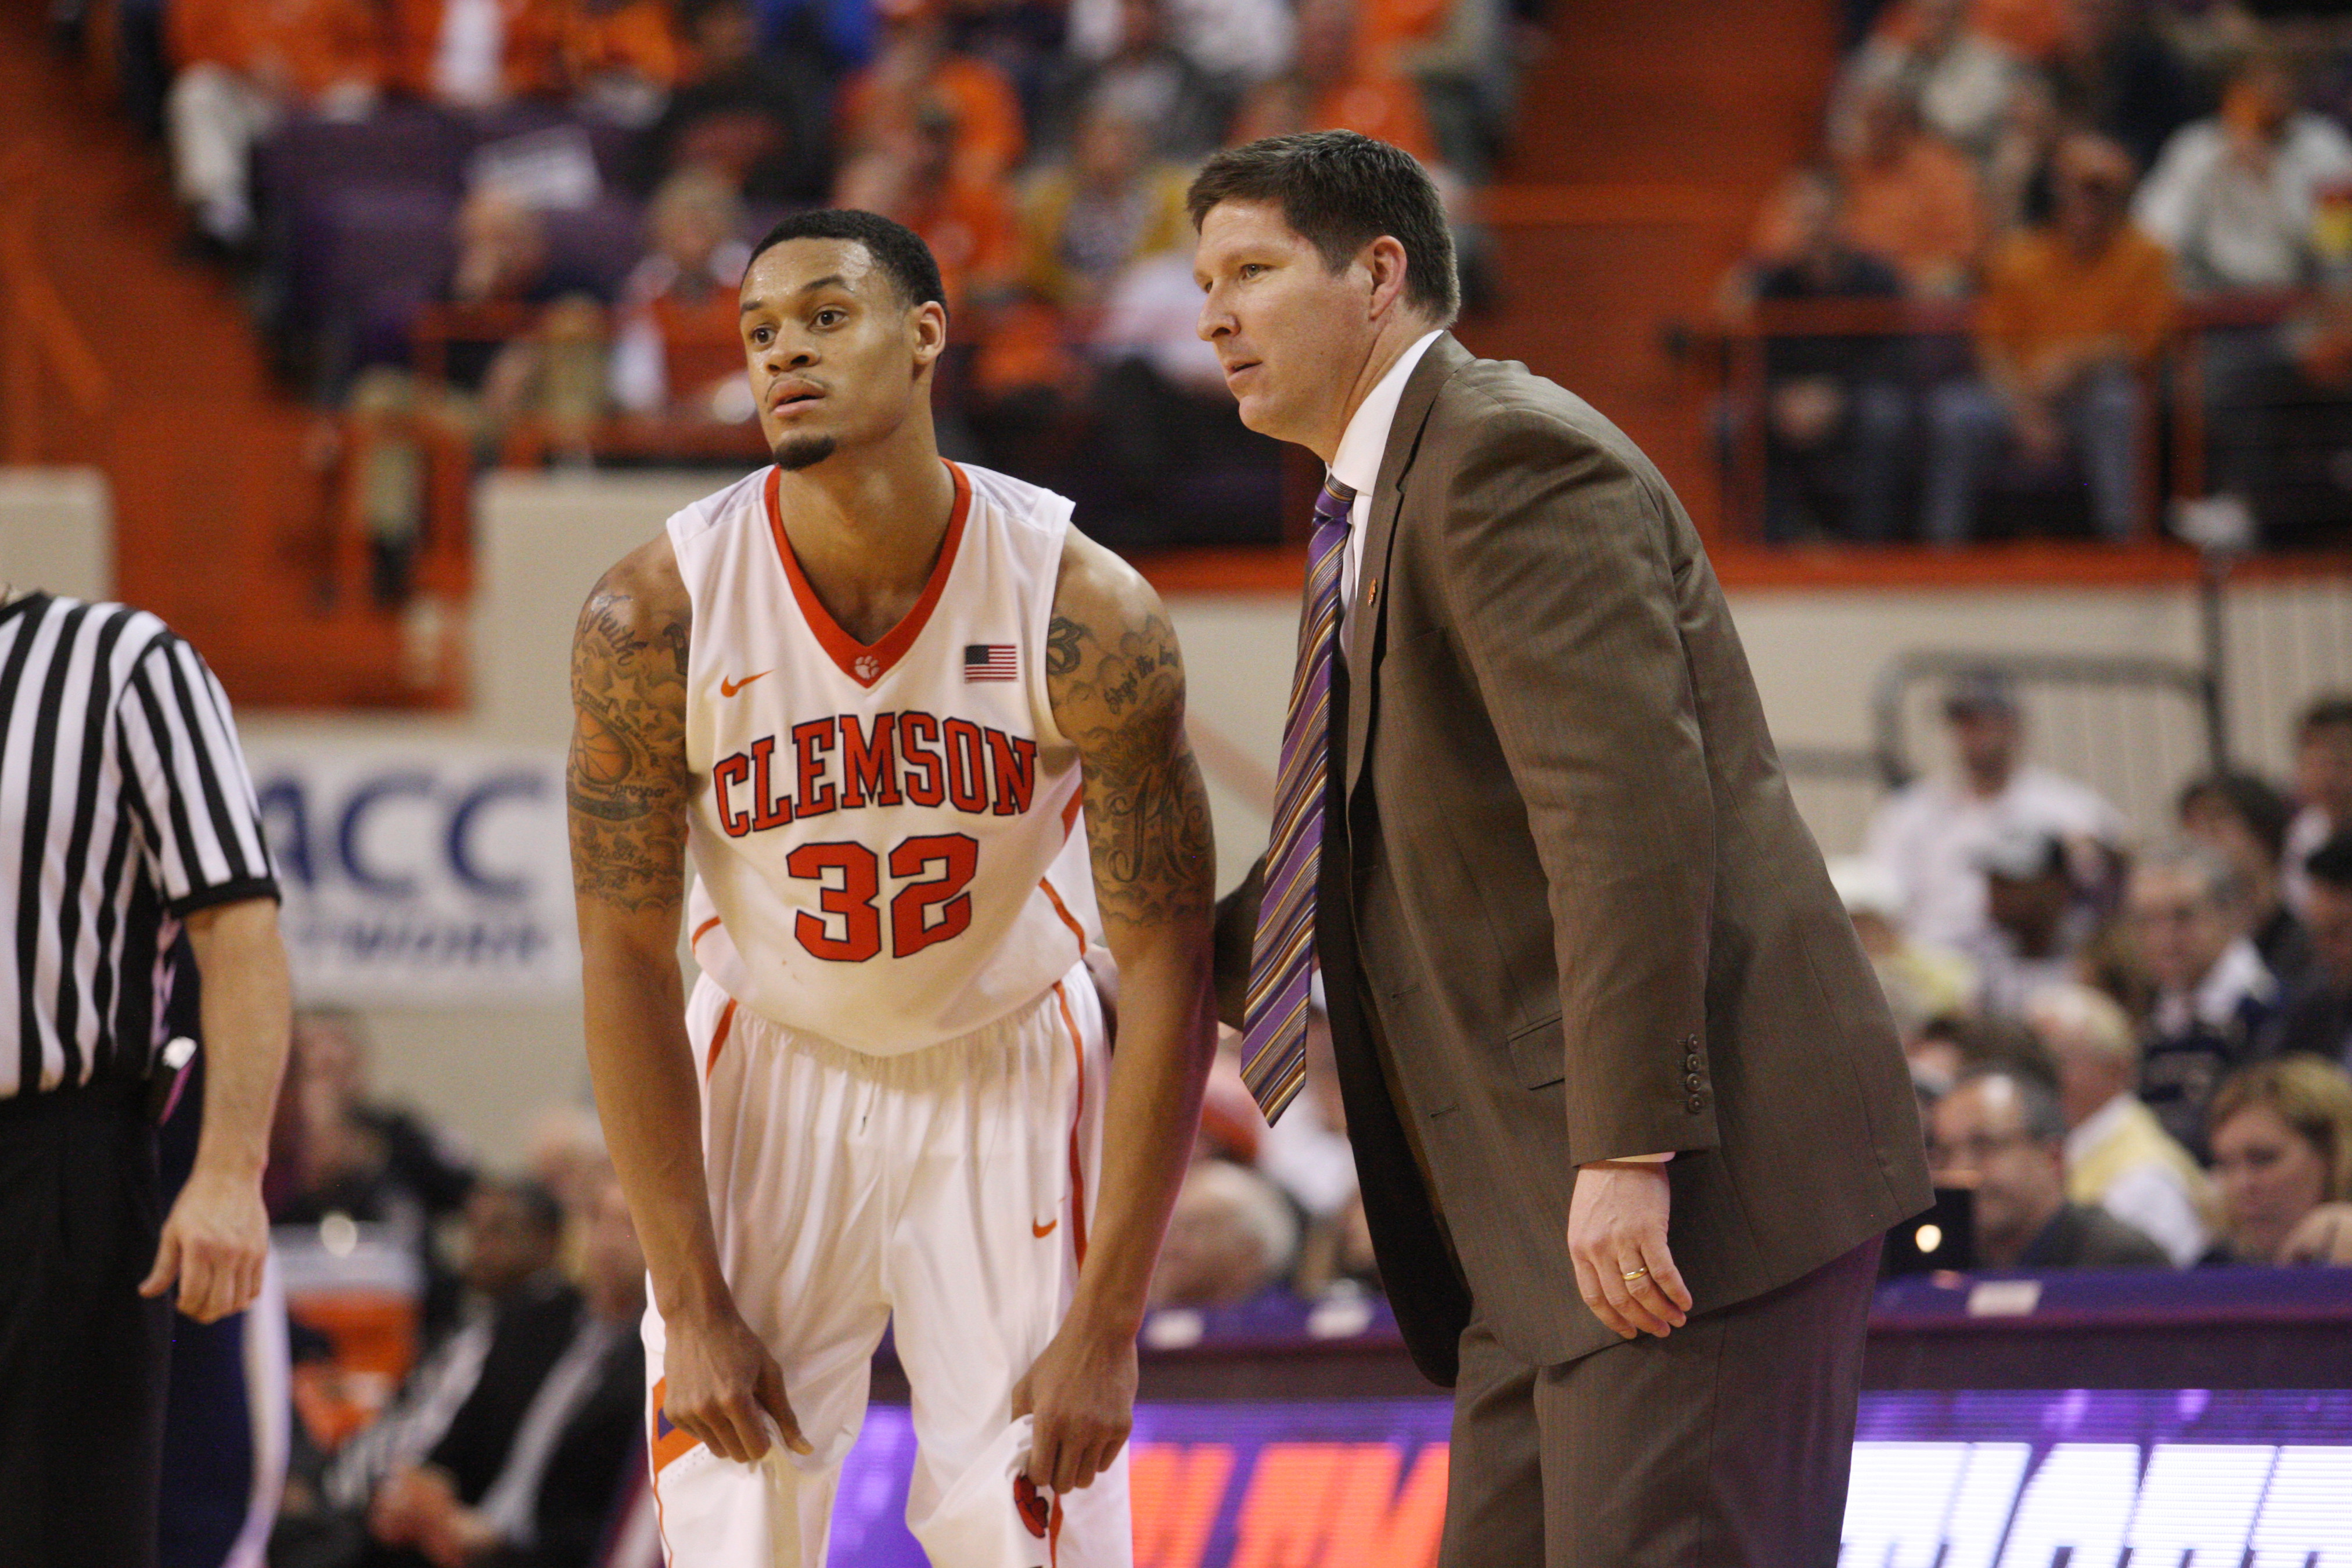 FEATURE: Brownell Sees Bright Future for McDaniels, Program